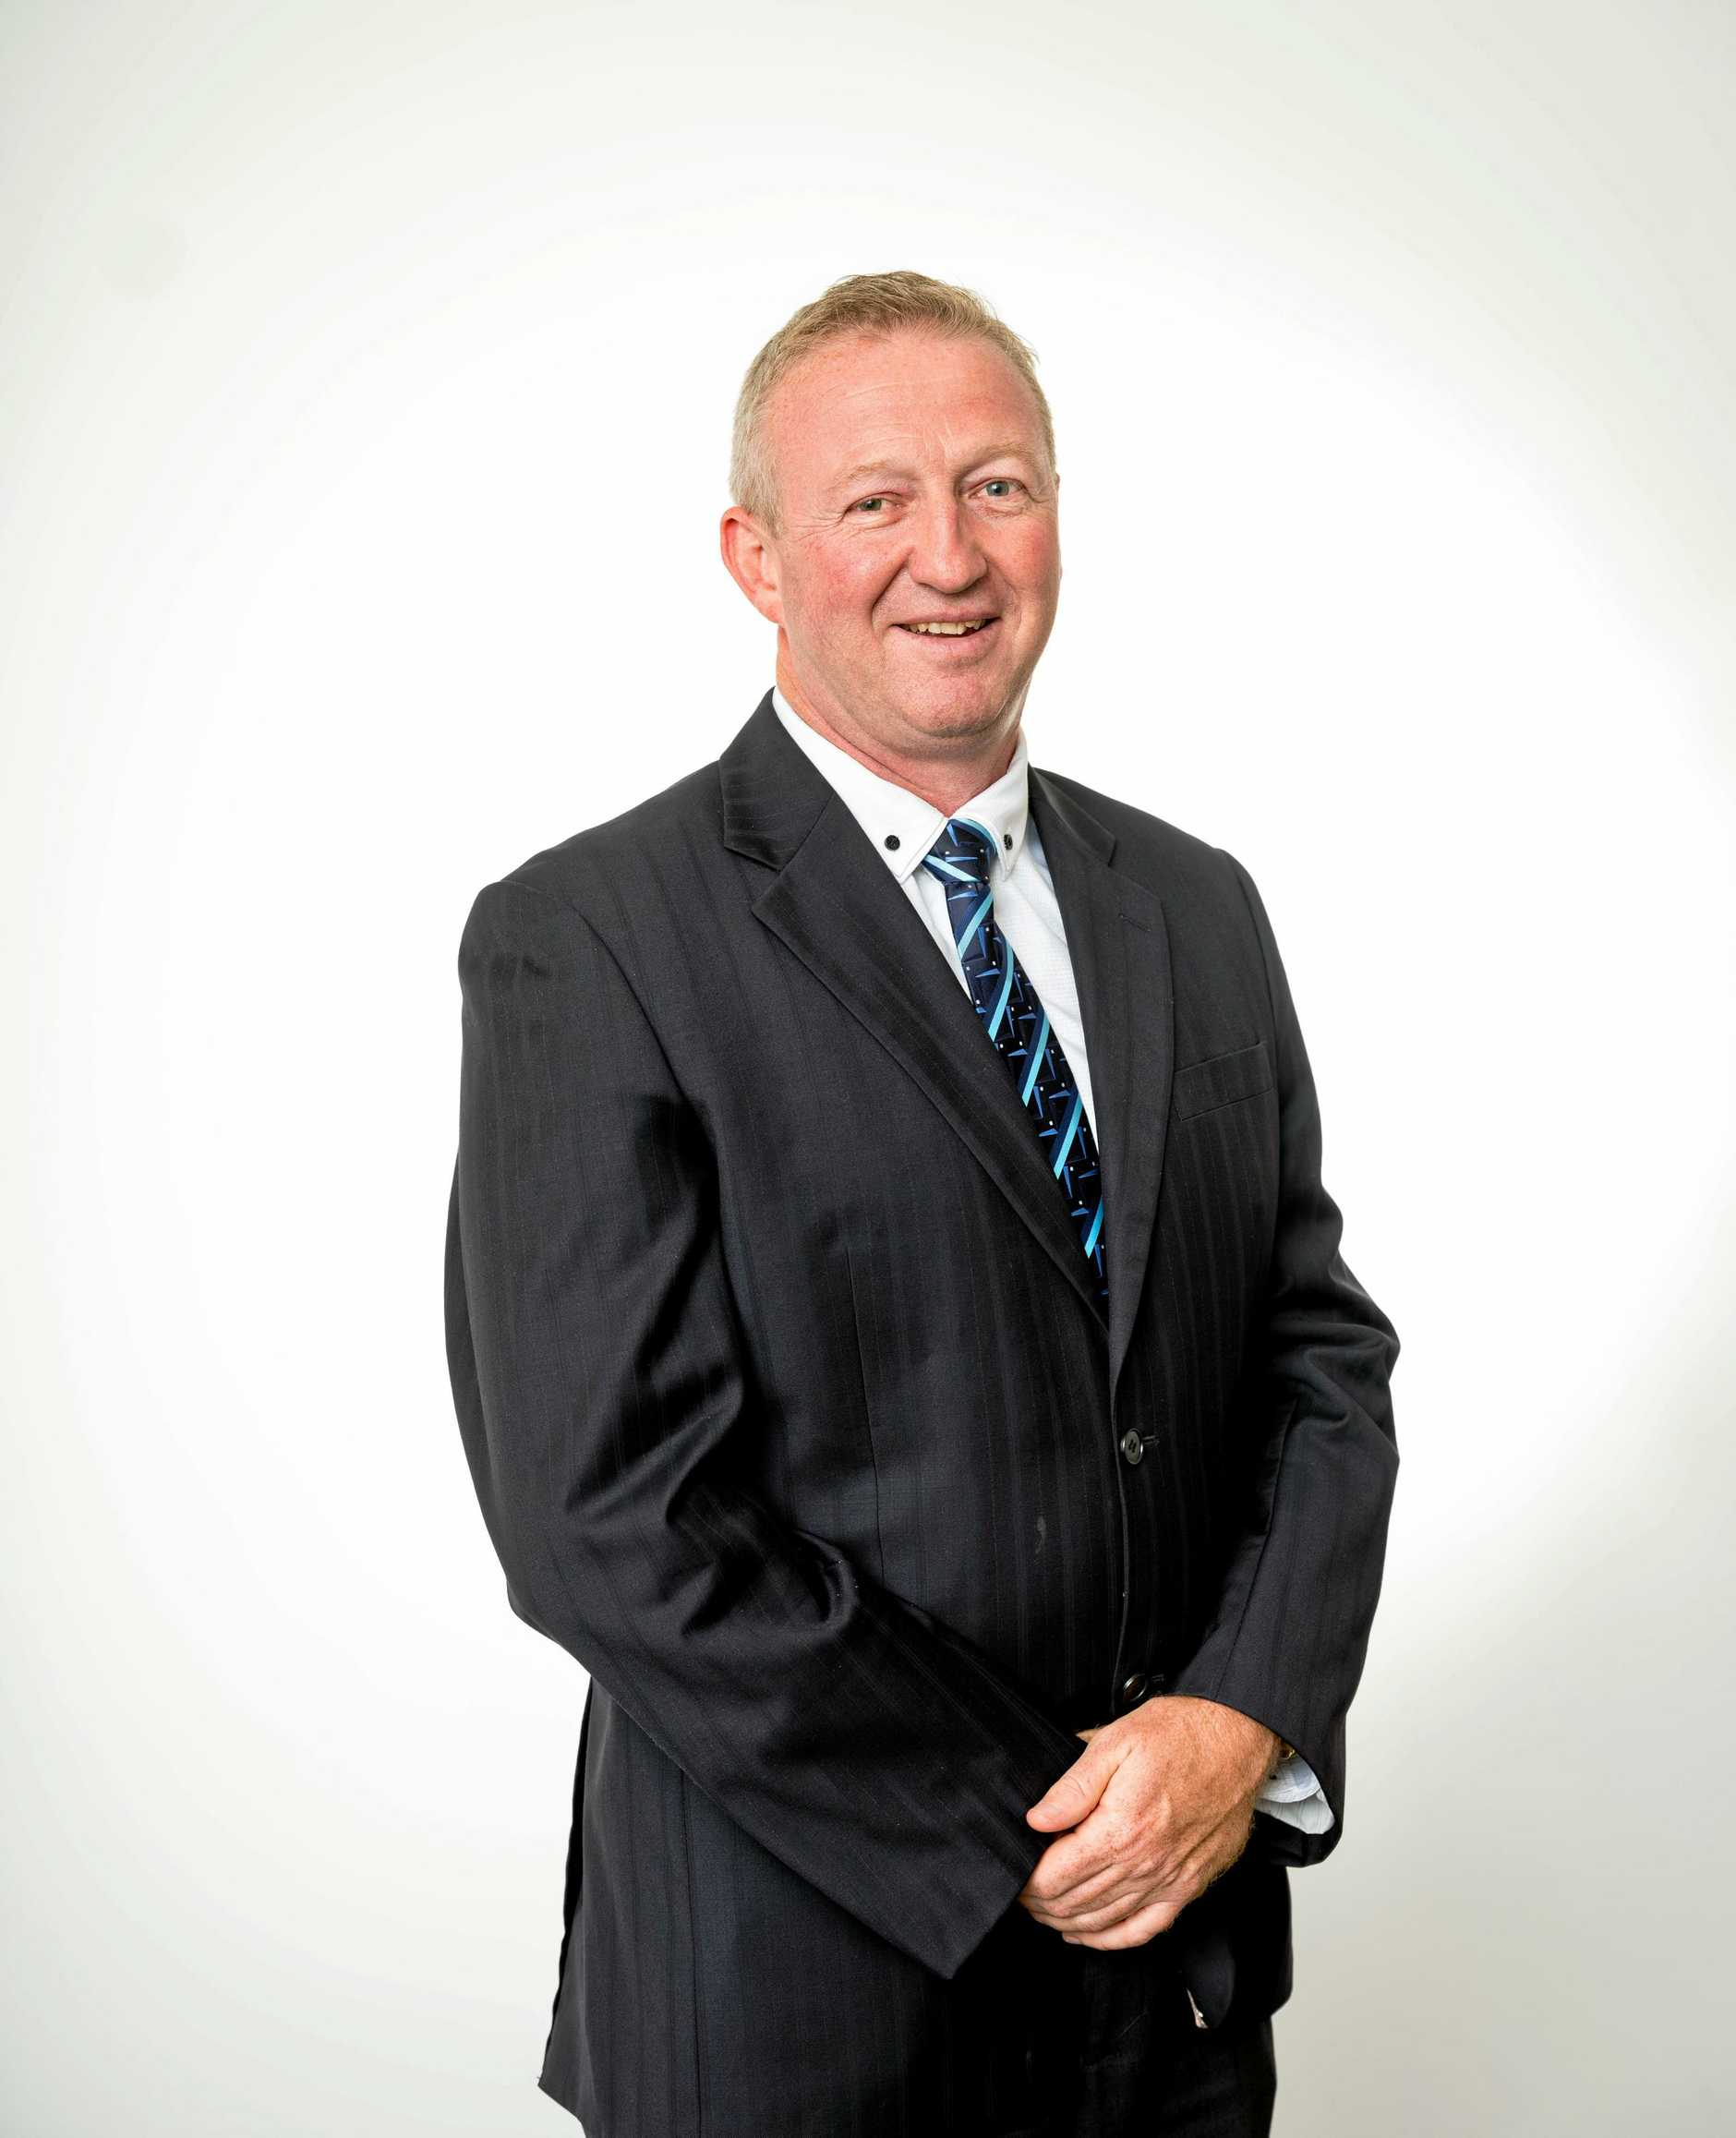 THE Rock has appointed experienced local banker Peter Fraser to lead its Central Queensland retail network.